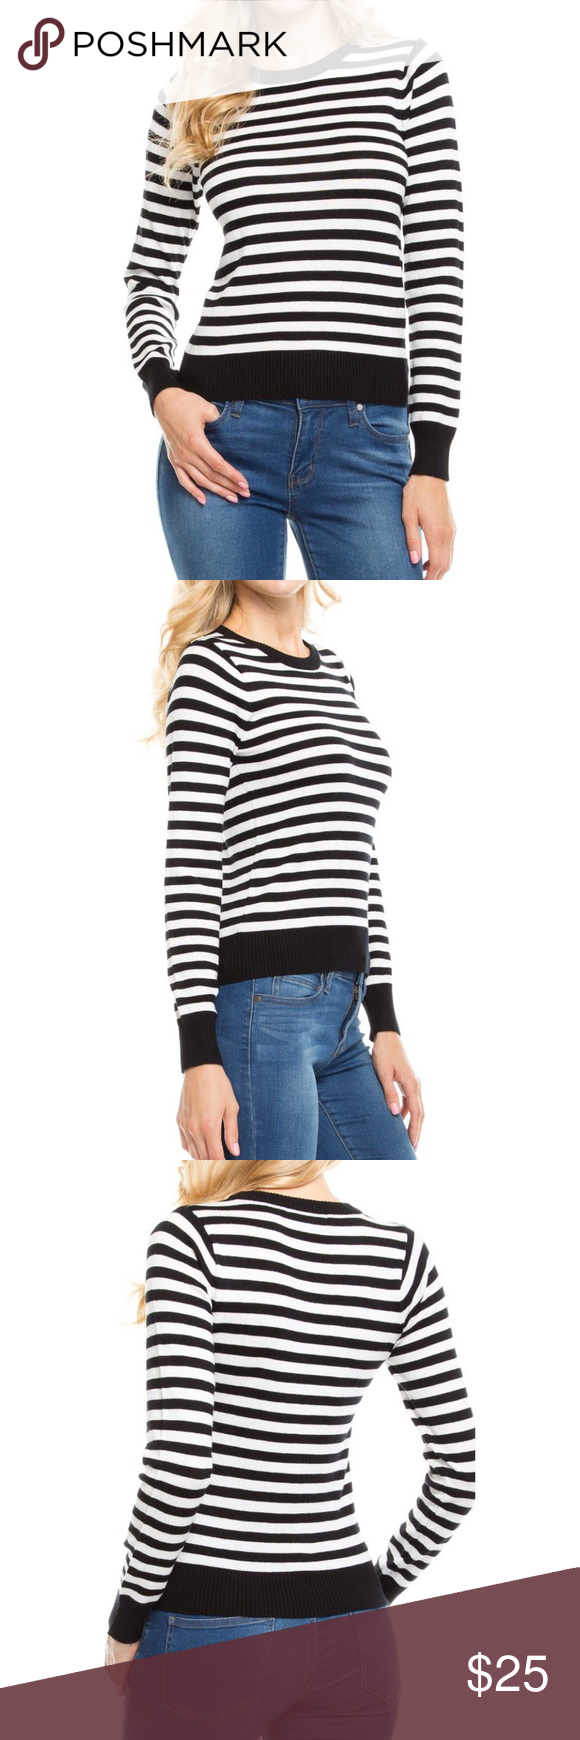 "▫️▪️Black and White striped Long sleeve top ▫️▪️ ⚫️⚪️Black and white striped long sleeve sweater. Very comfy sweater. The material is very soft.⚫️⚪️75% Viscose, 25% Polyester 21.5"" long Sweaters Crew & Scoop Necks"